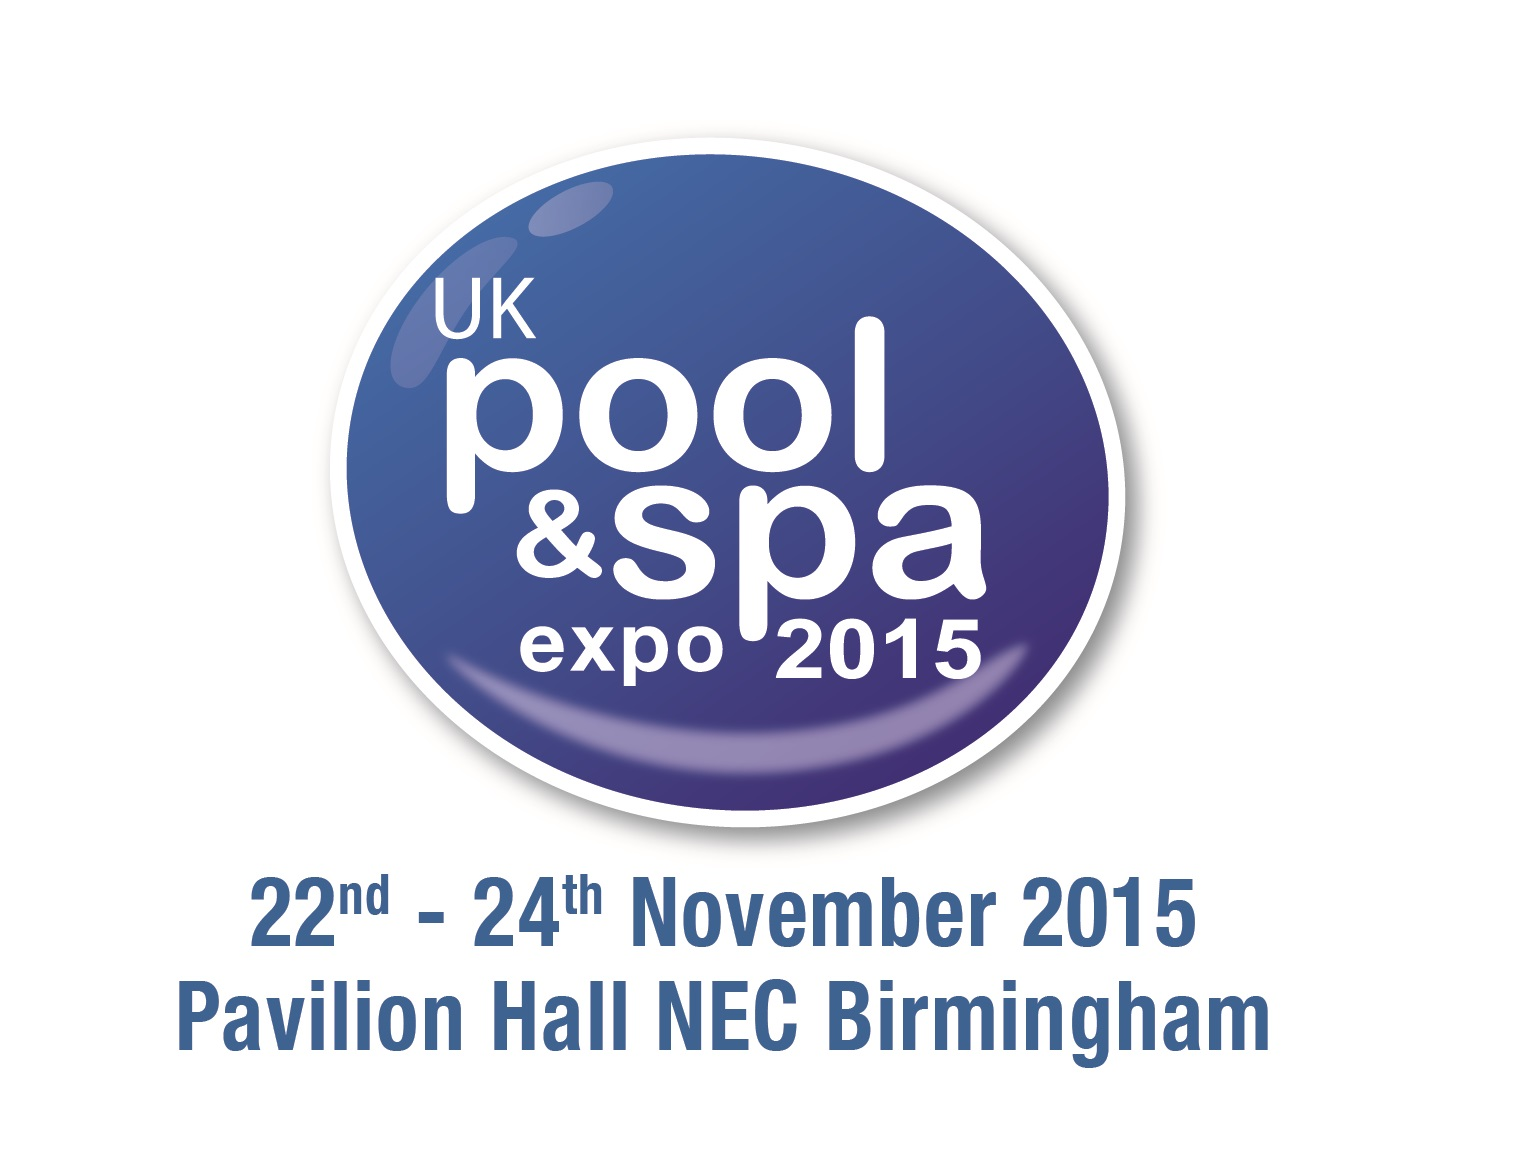 Uk pool spa expo announces new dates pool and spa scene for Pool trade show 2015